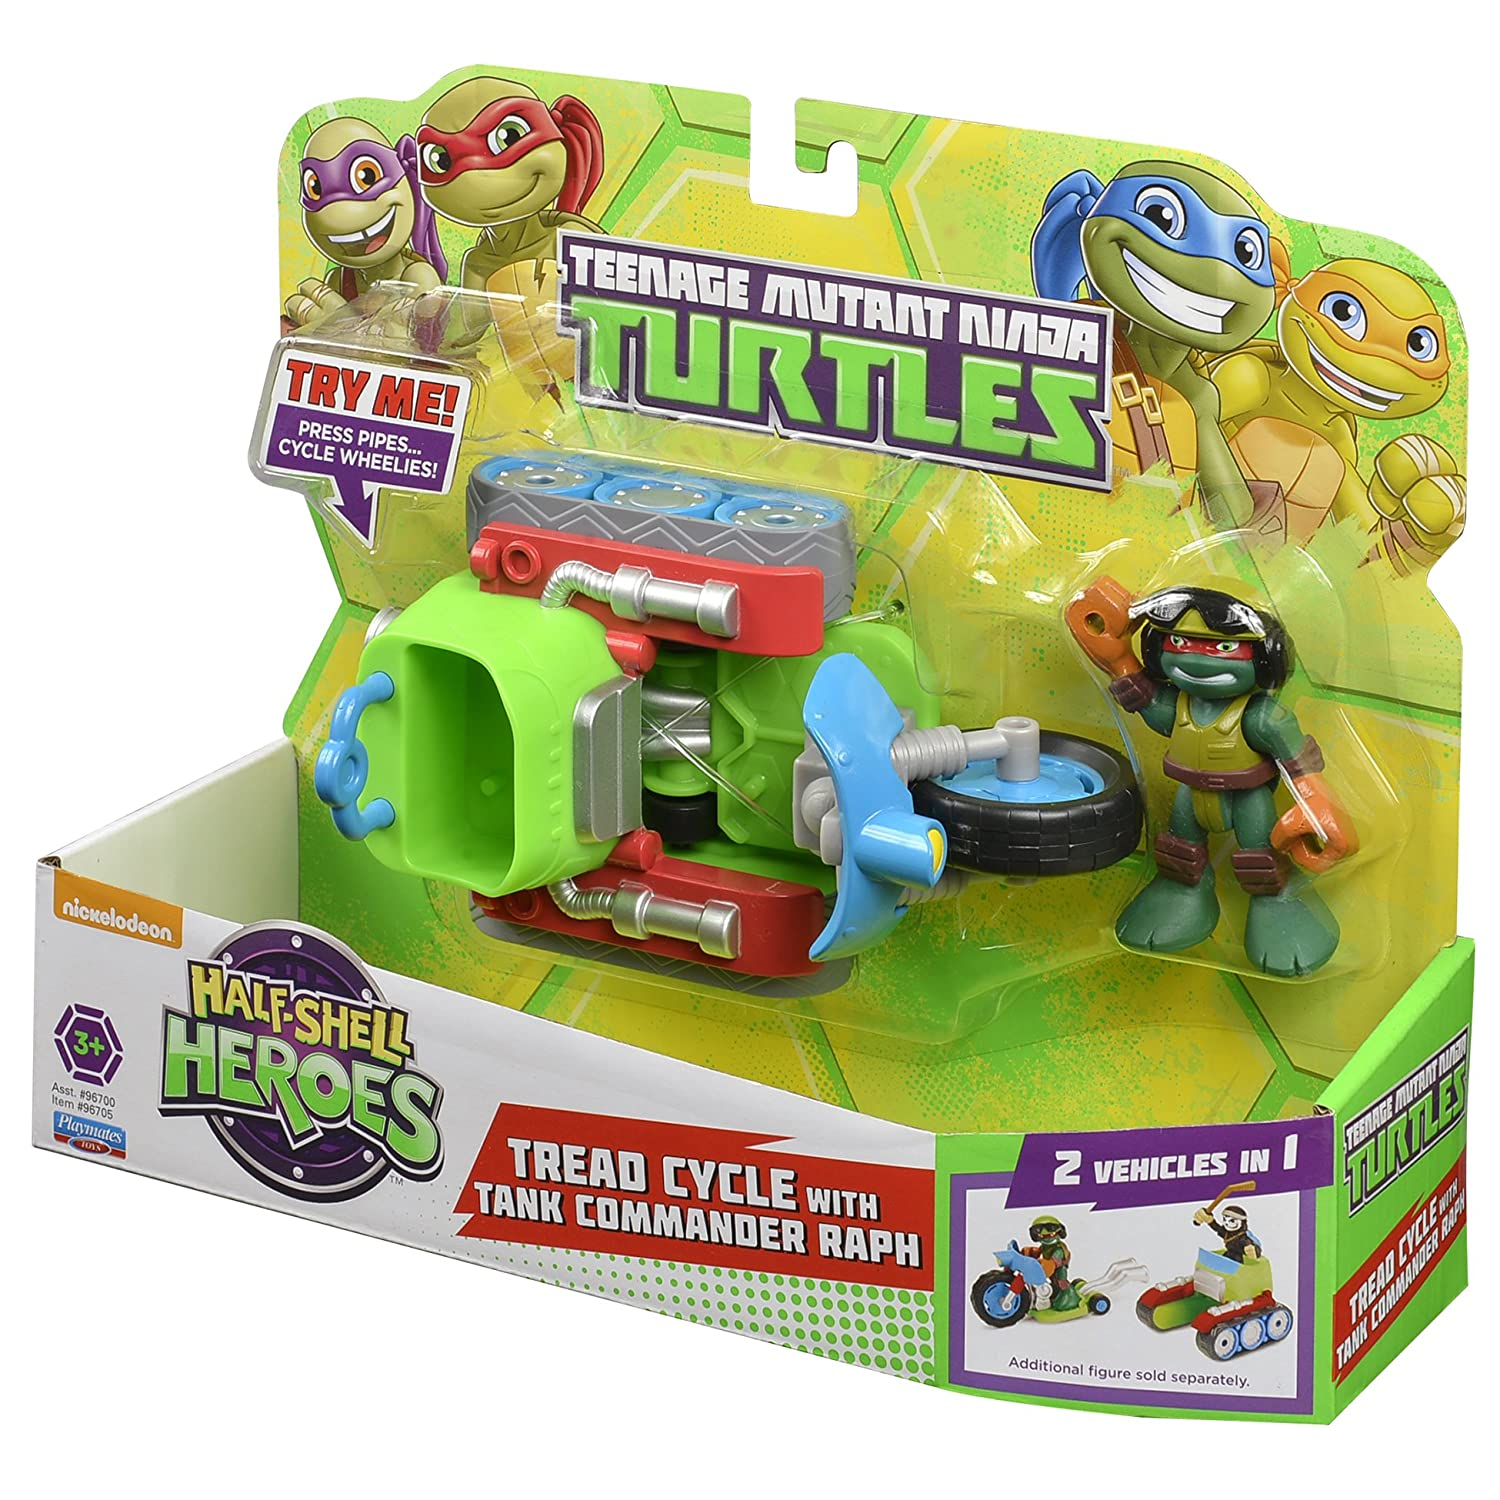 Teenage Mutant Ninja Turtles Pre-Cool Half Shell Heroes Motorcycle Tank with Raphael Vehicle and Figure Playmates Toys 96705